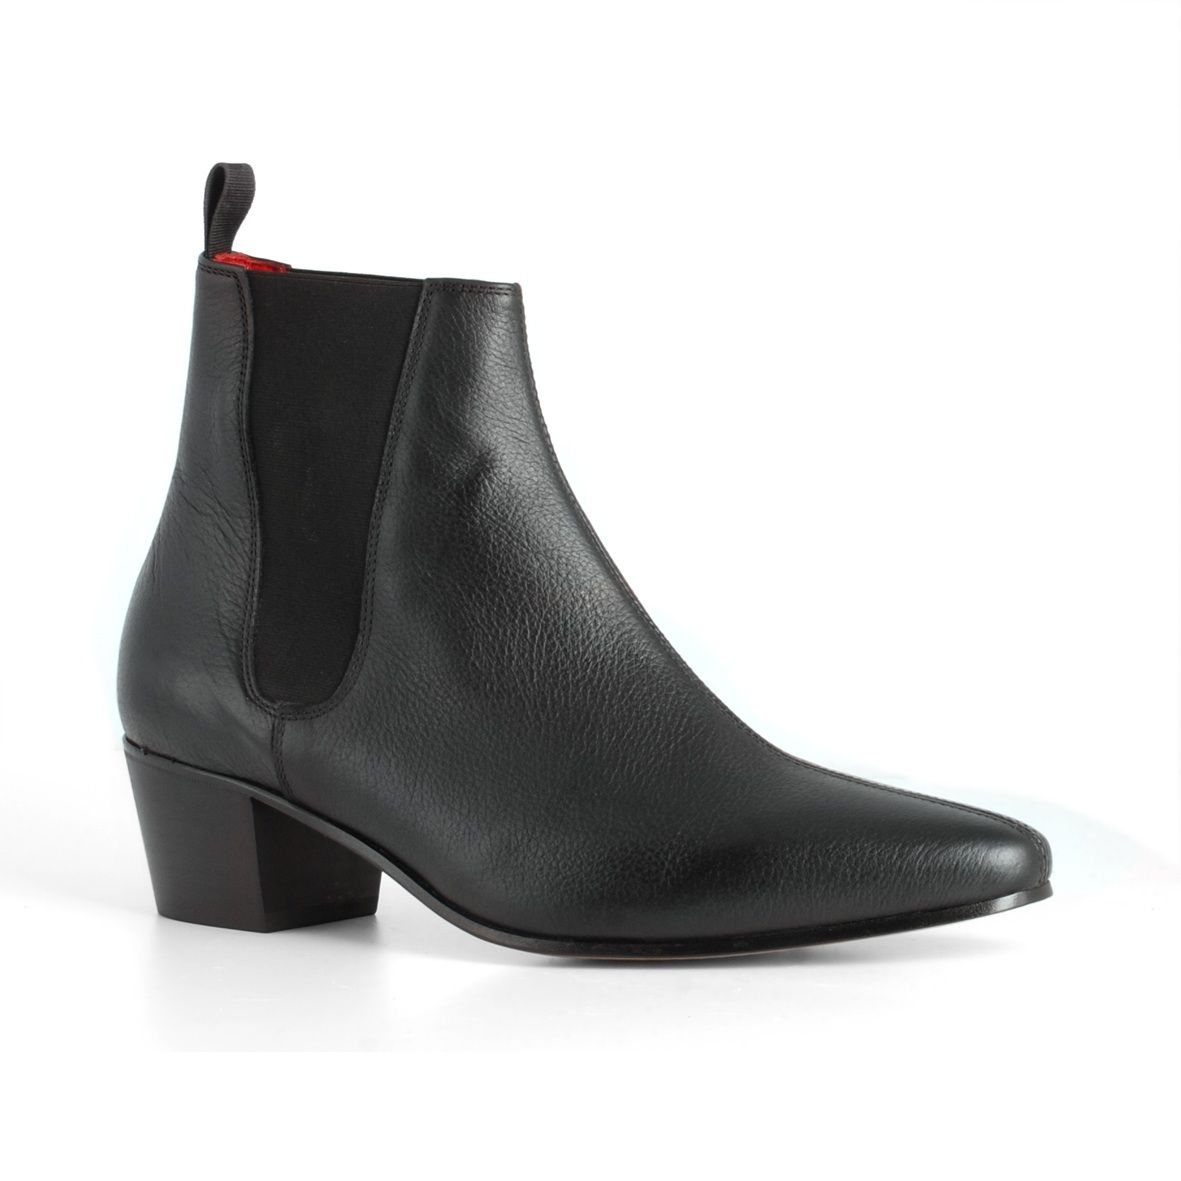 "a78ddb8cb16 Beatles boot"", Sixties Beatwear, Classic Chelsea boot and Cuban heel ..."